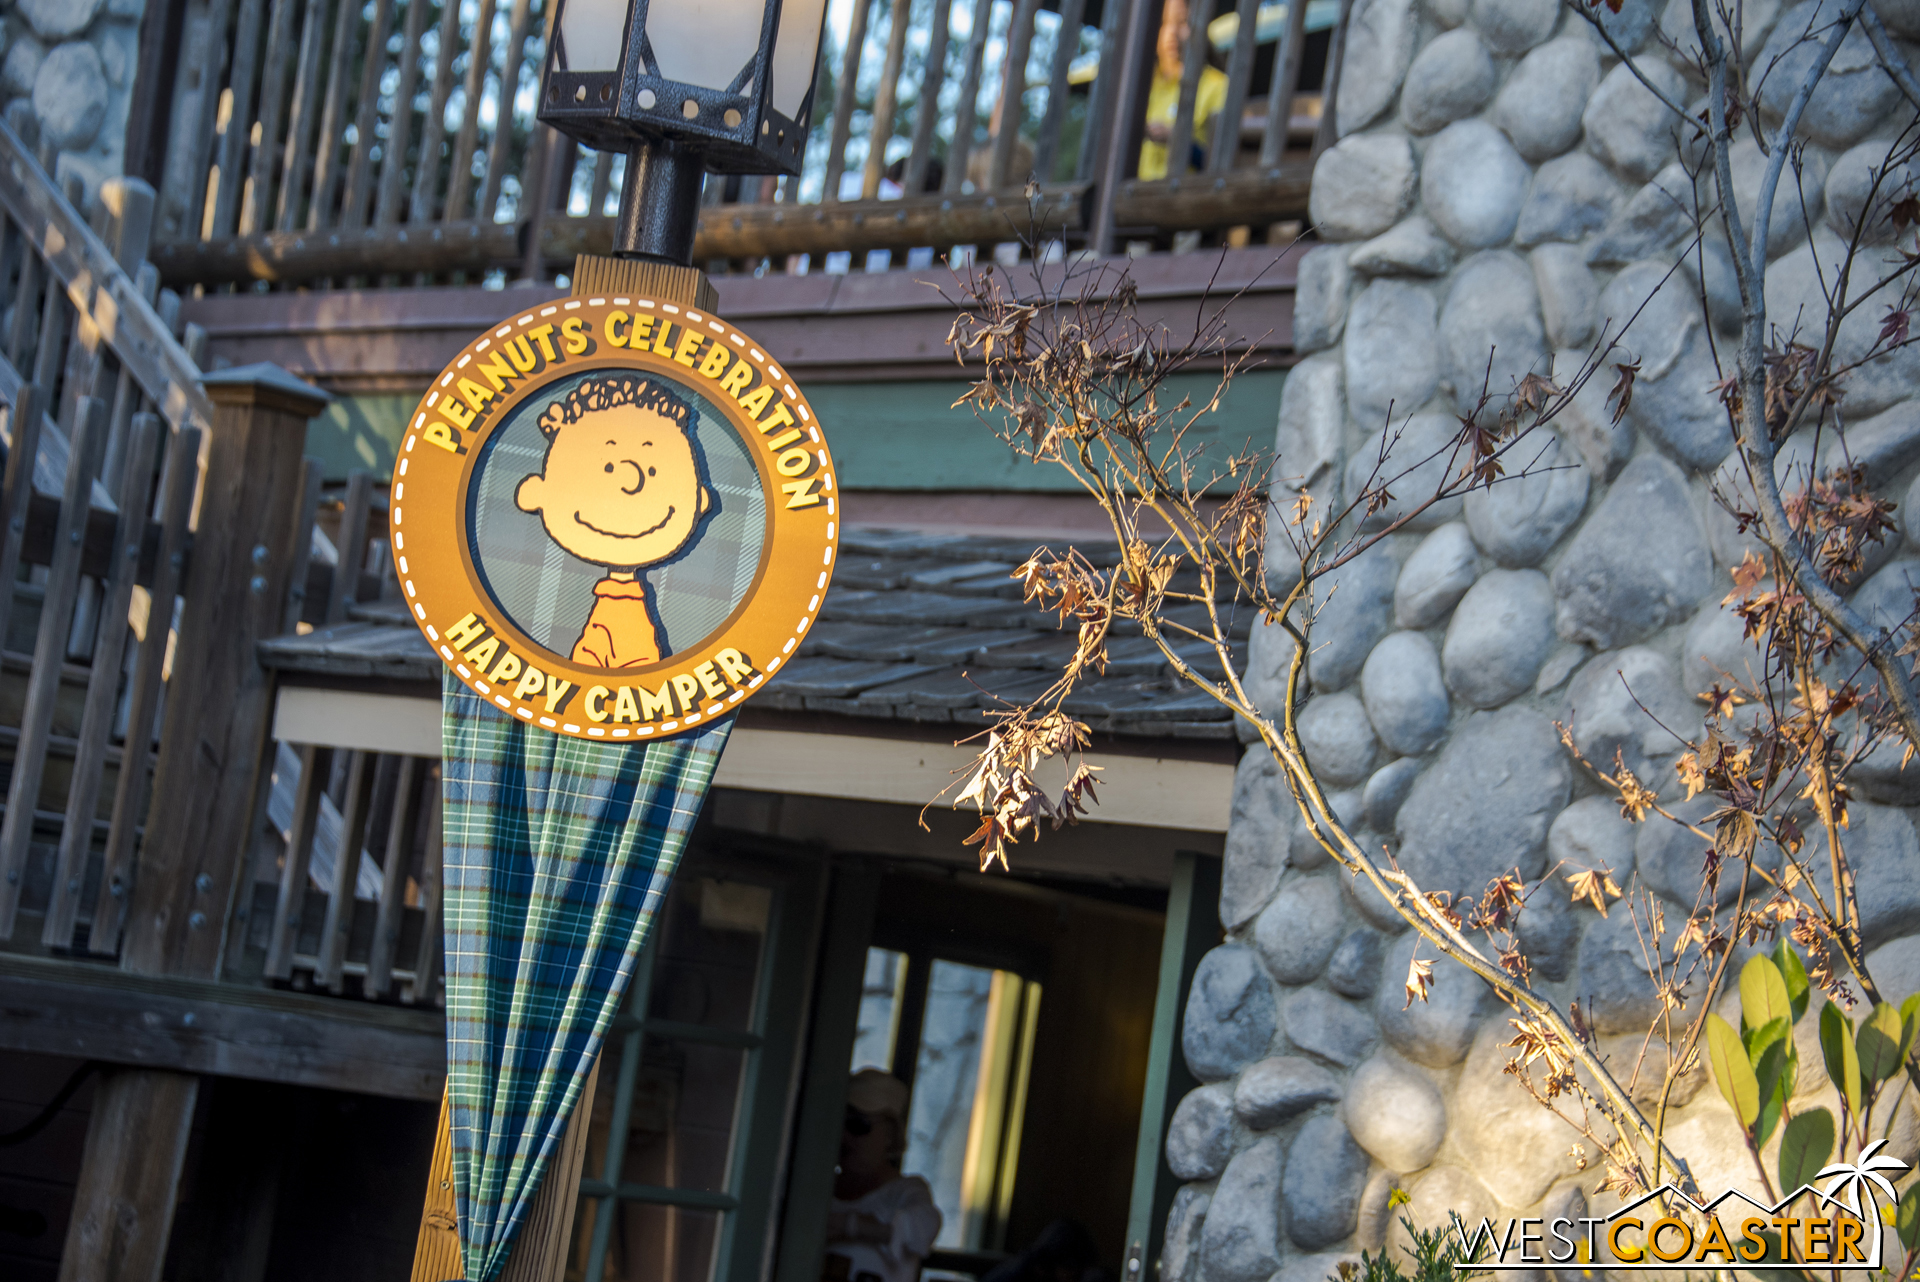 Banners for the Peanuts Celebration can be found throughout Camp Snoopy, but also elsewhere in the park.